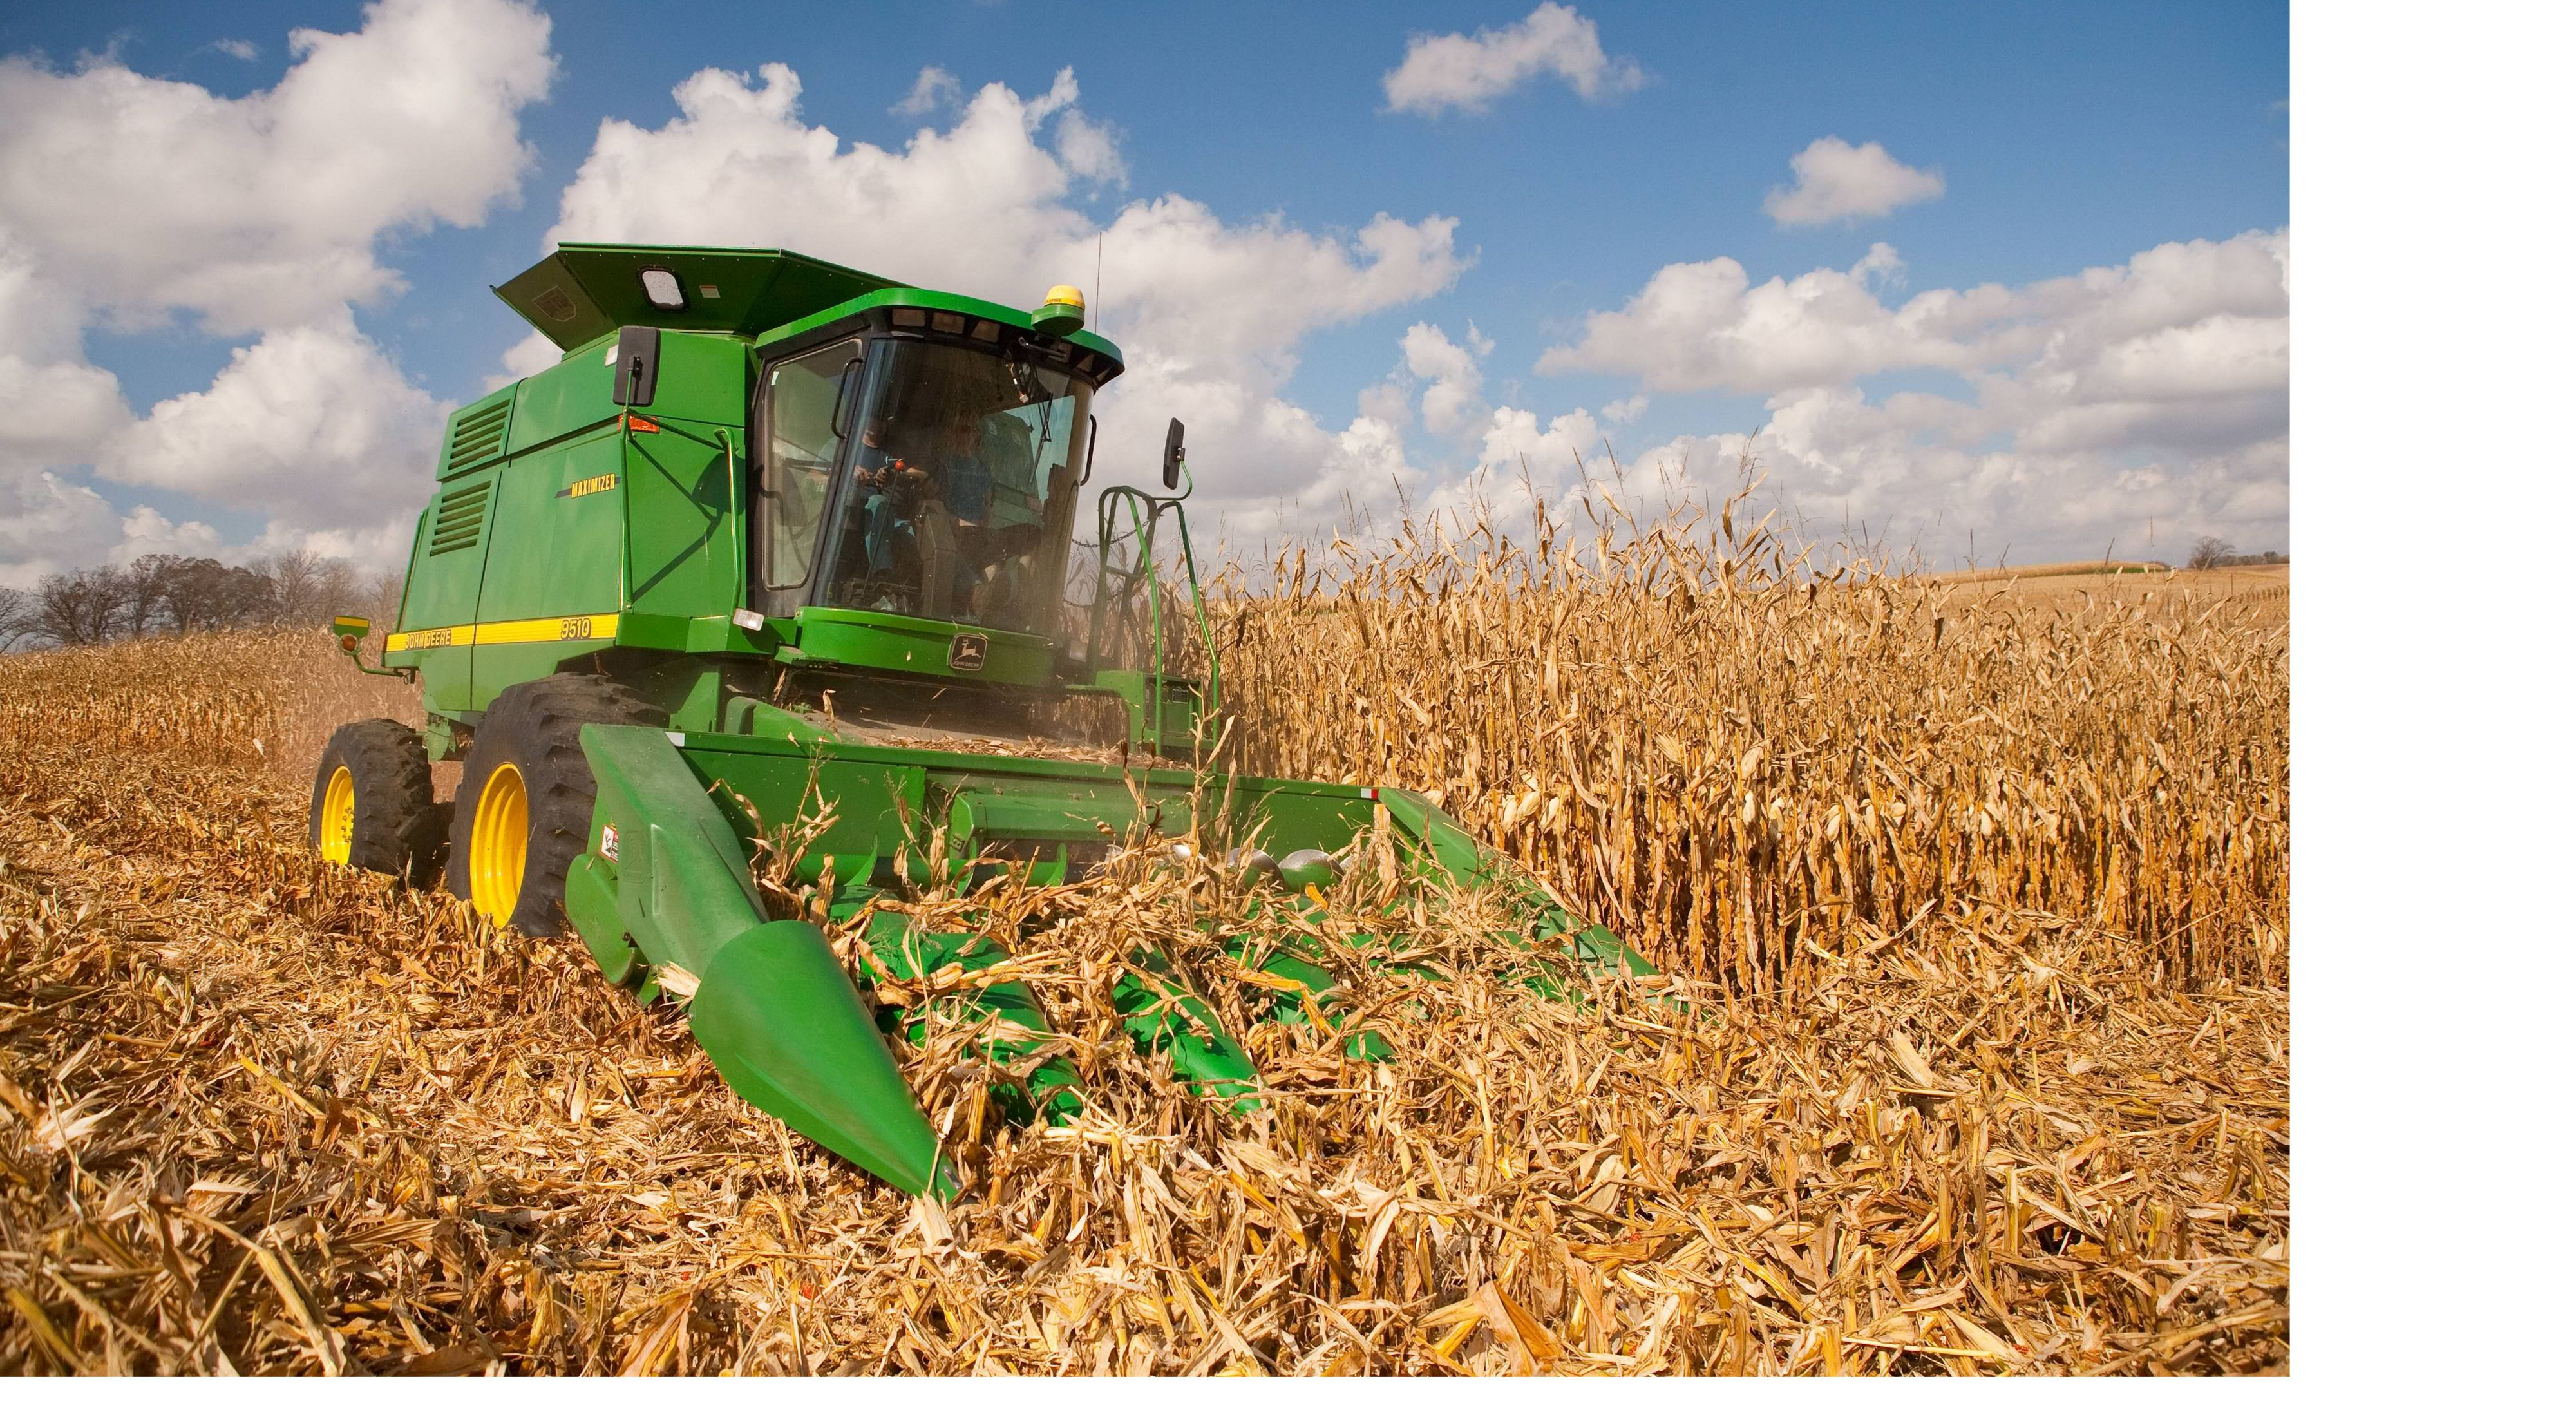 Bright green tractor in a cornfield on a sunny day